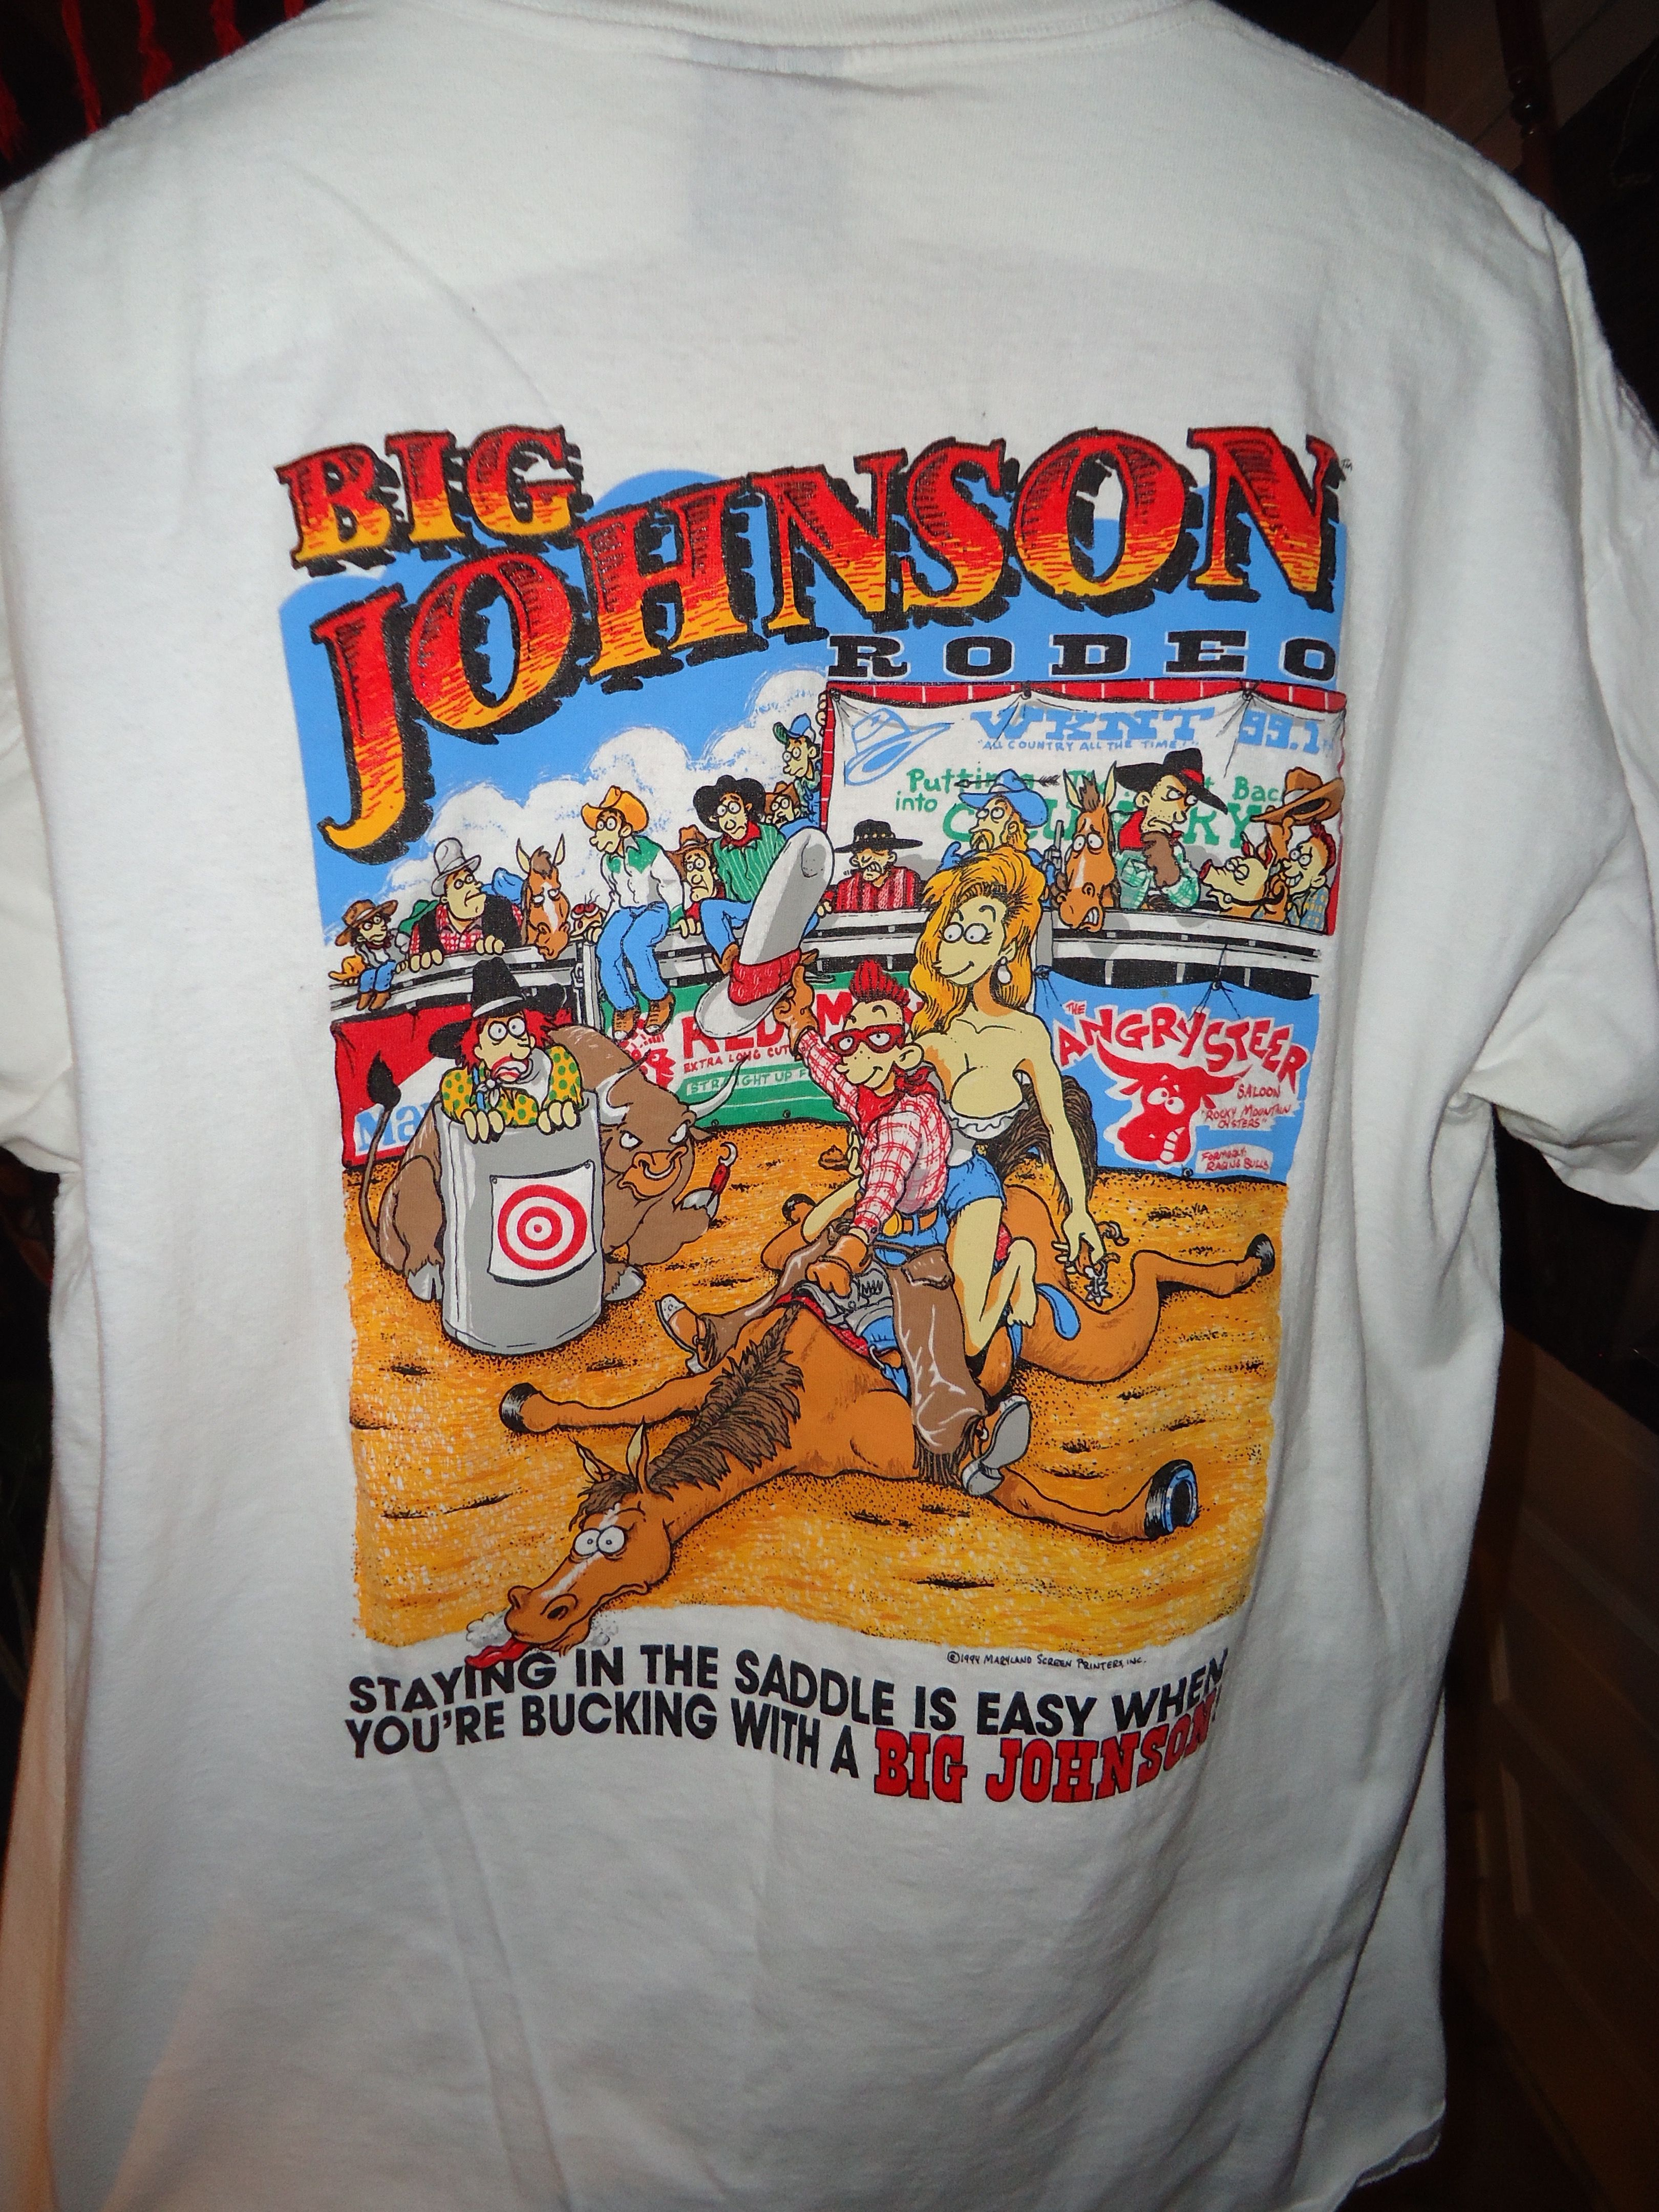 a758c4638 Vintage - Big Johnson - Rodeo - 8 Seconds Is All We Need - T-Shirt - White  - XL